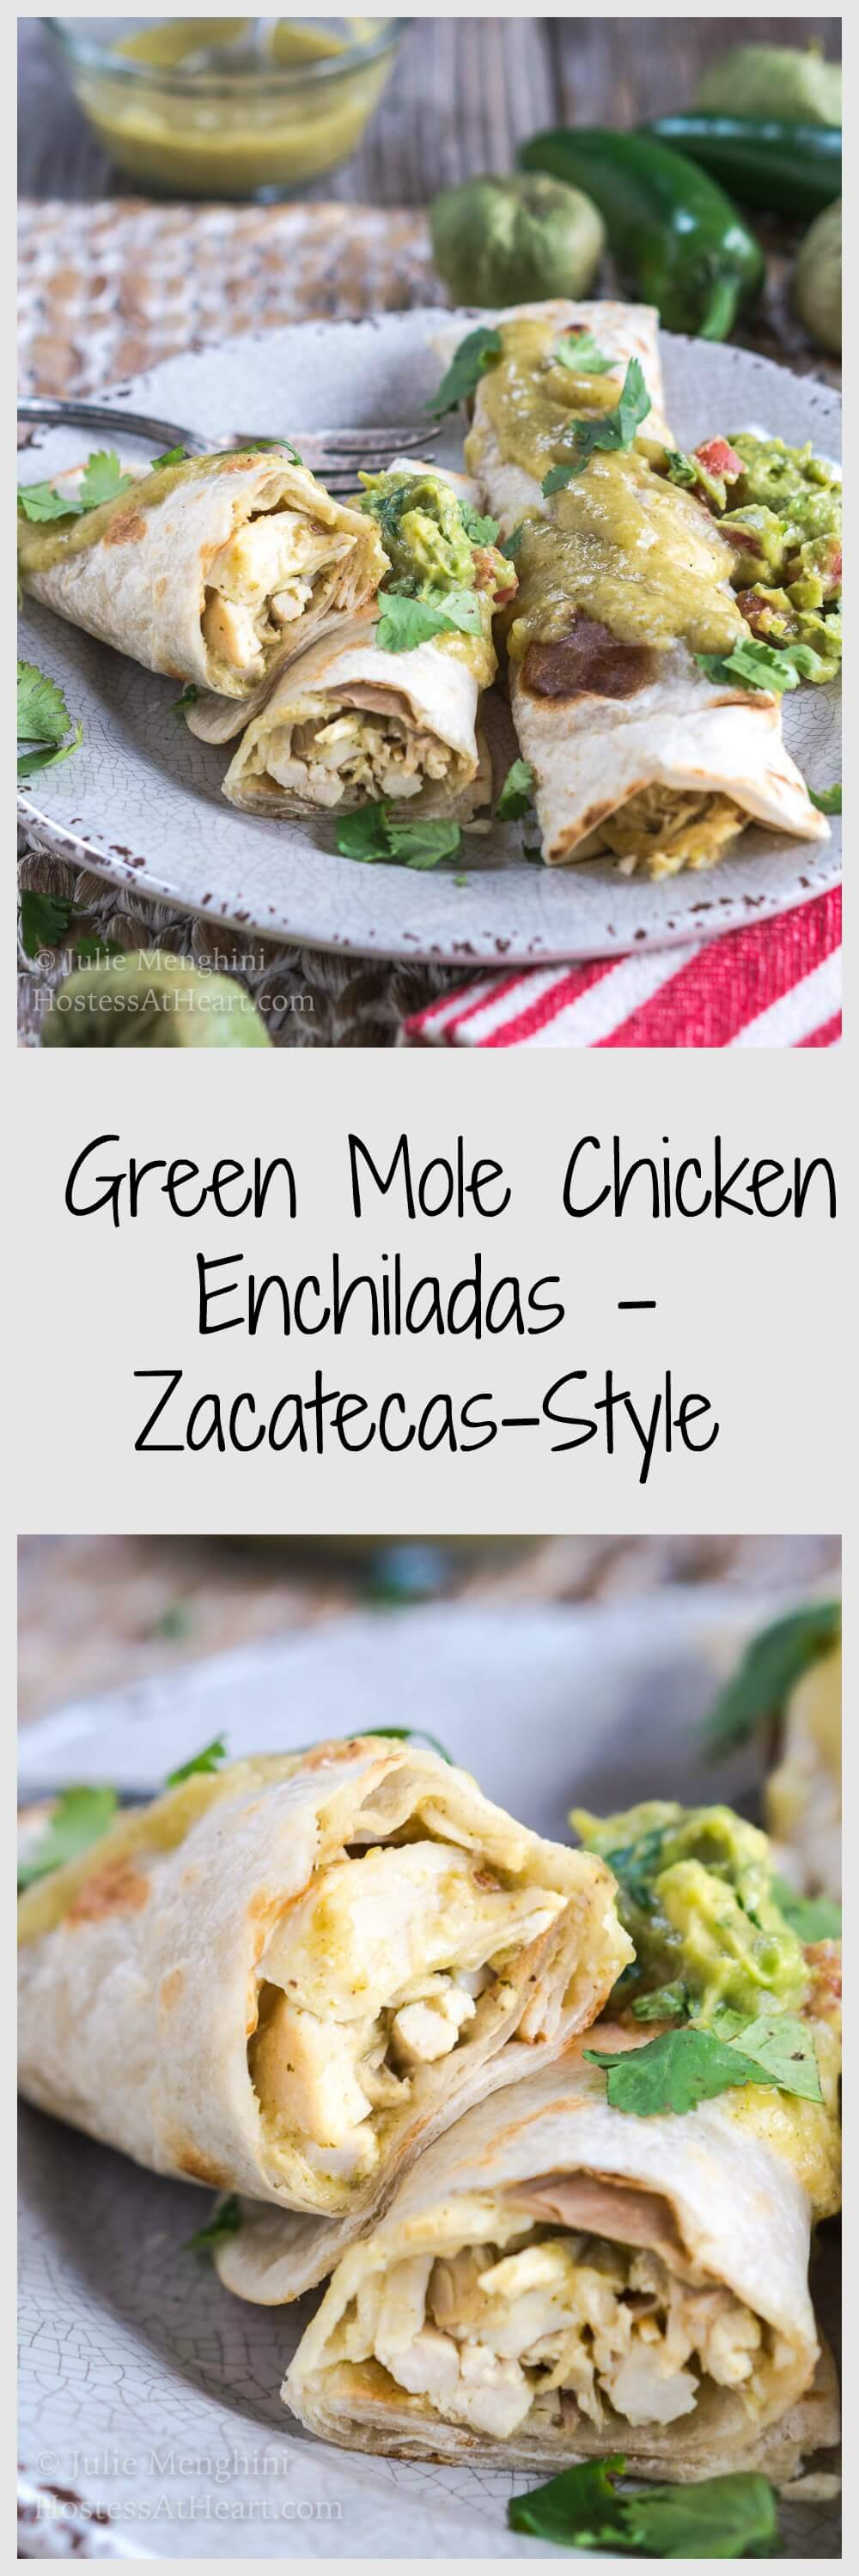 Really Good Green Mole Chicken Enchiladas - Zacatecas-Style are so flavorful and will take over as your favorite Enchiladas! | HostessAtHeart.com